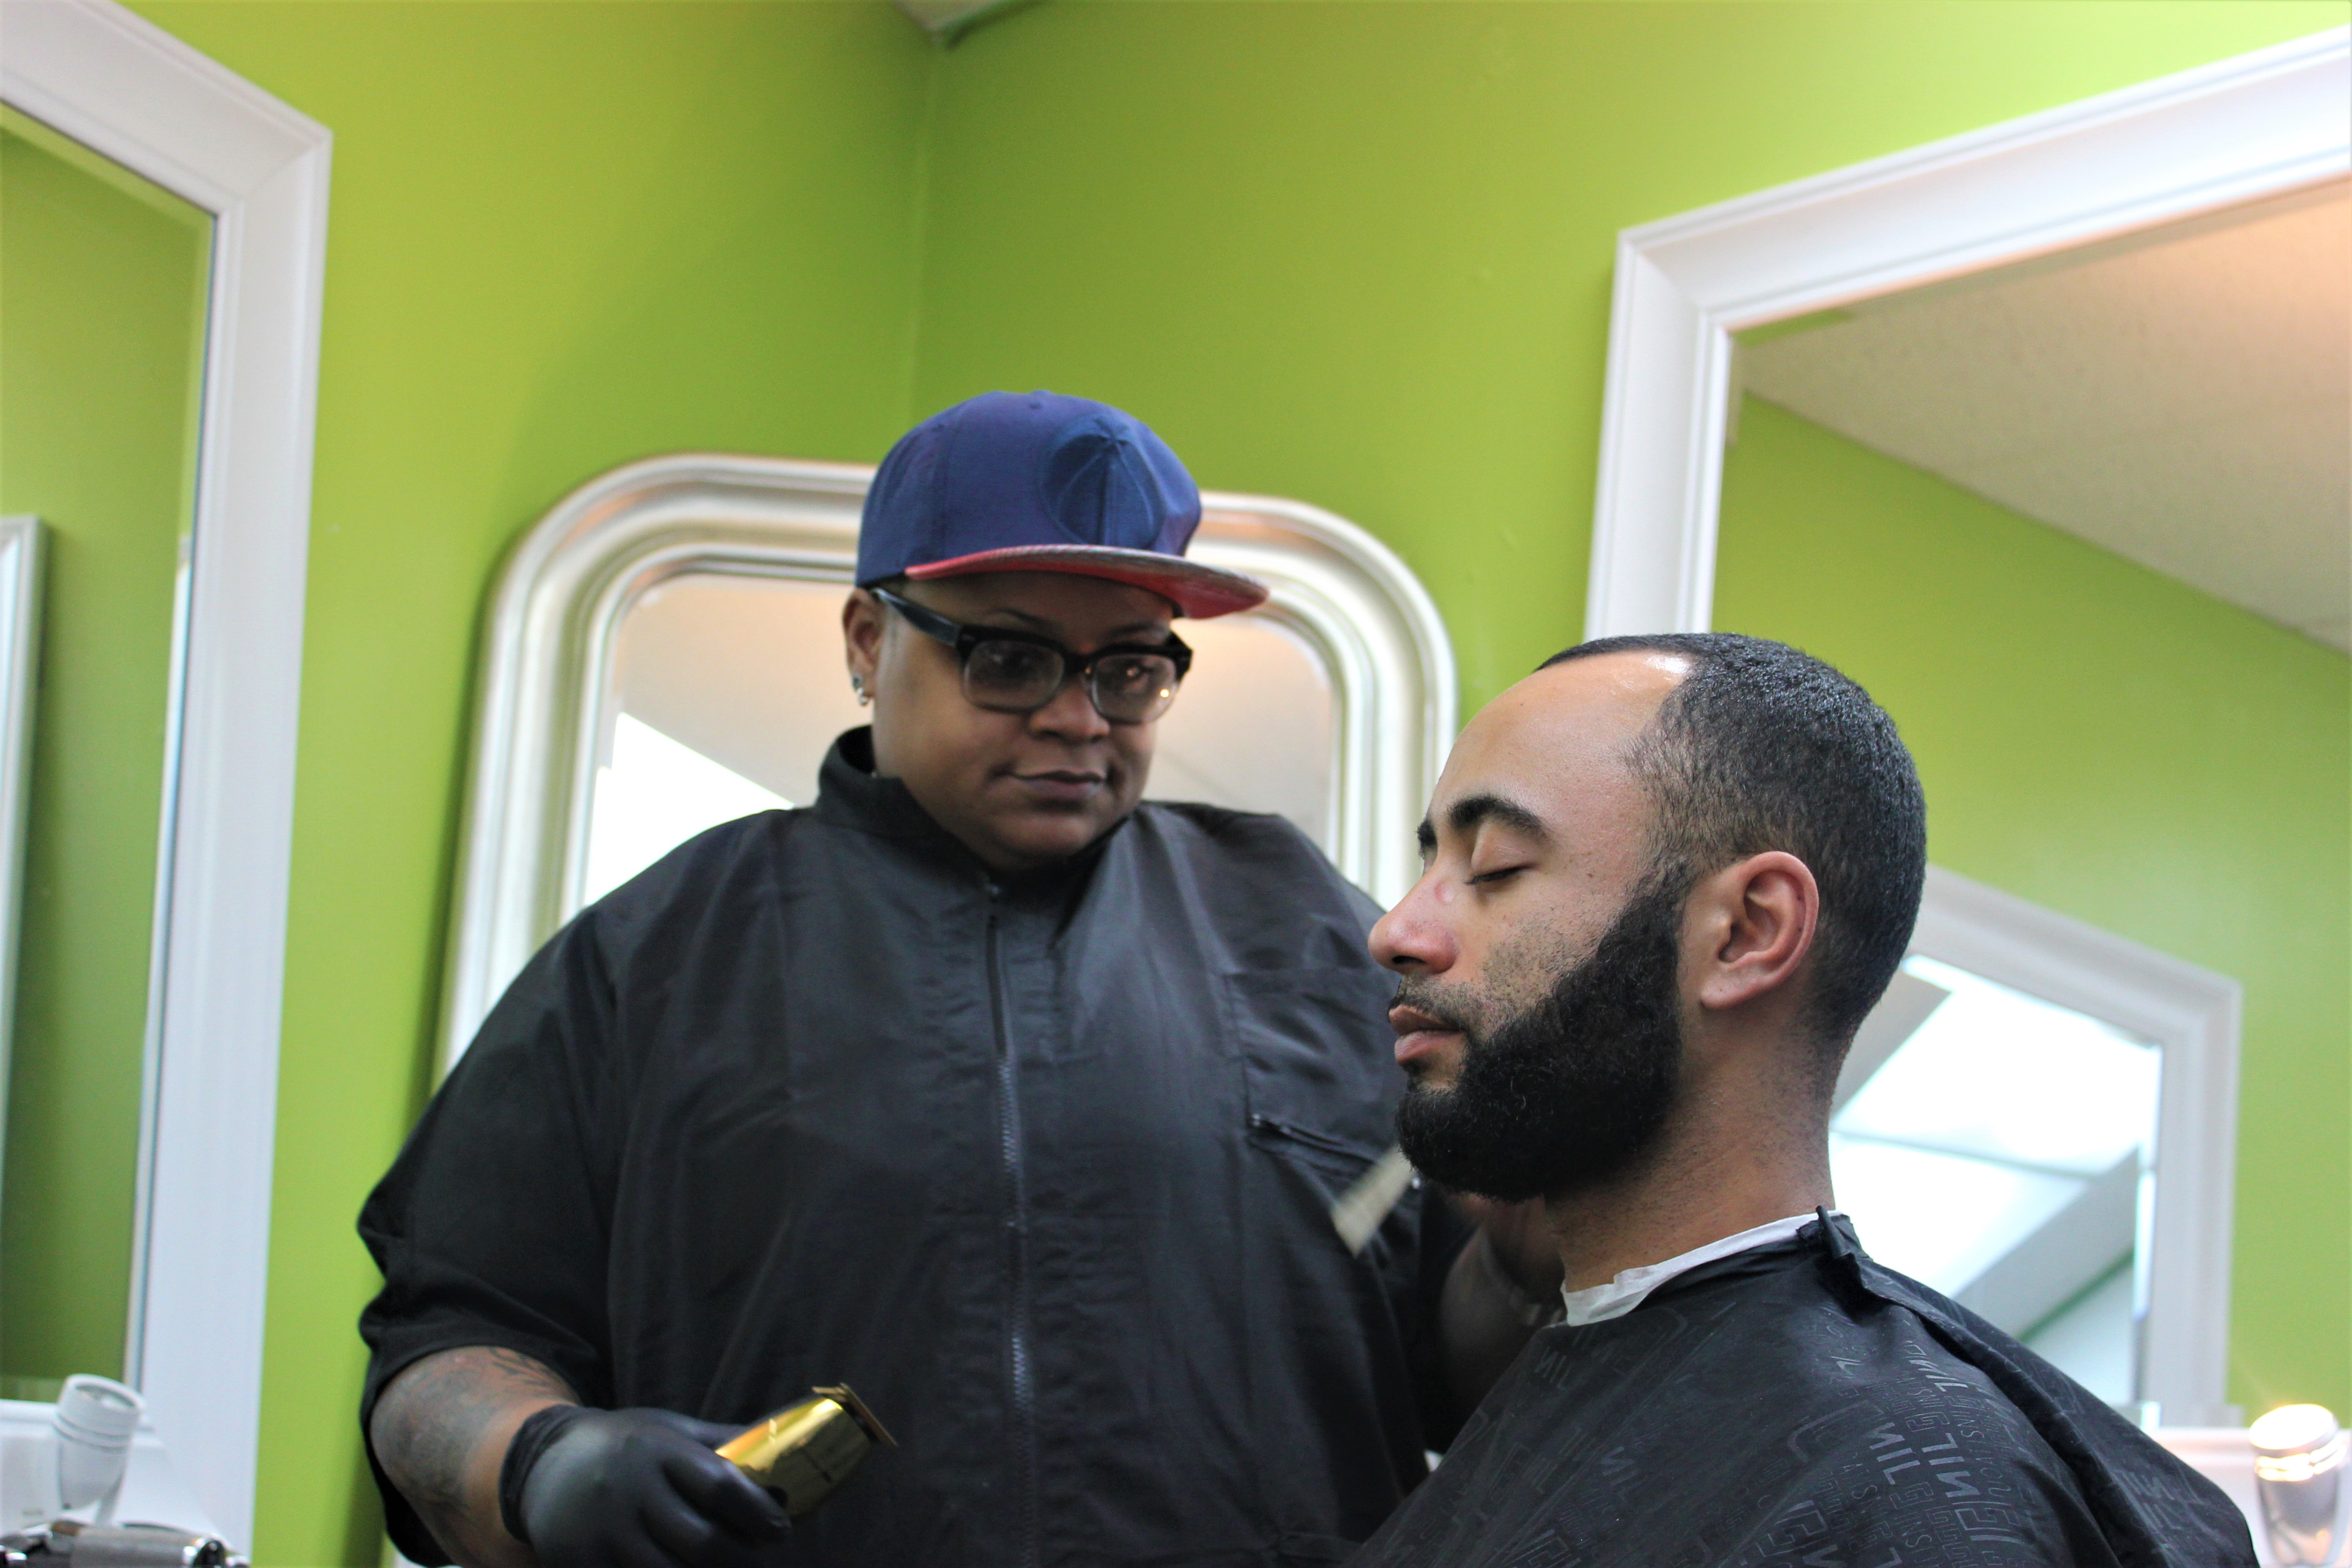 [Interview] Shae McCoy Interviews Local Baltimore Barber/Stylist, Max Styles